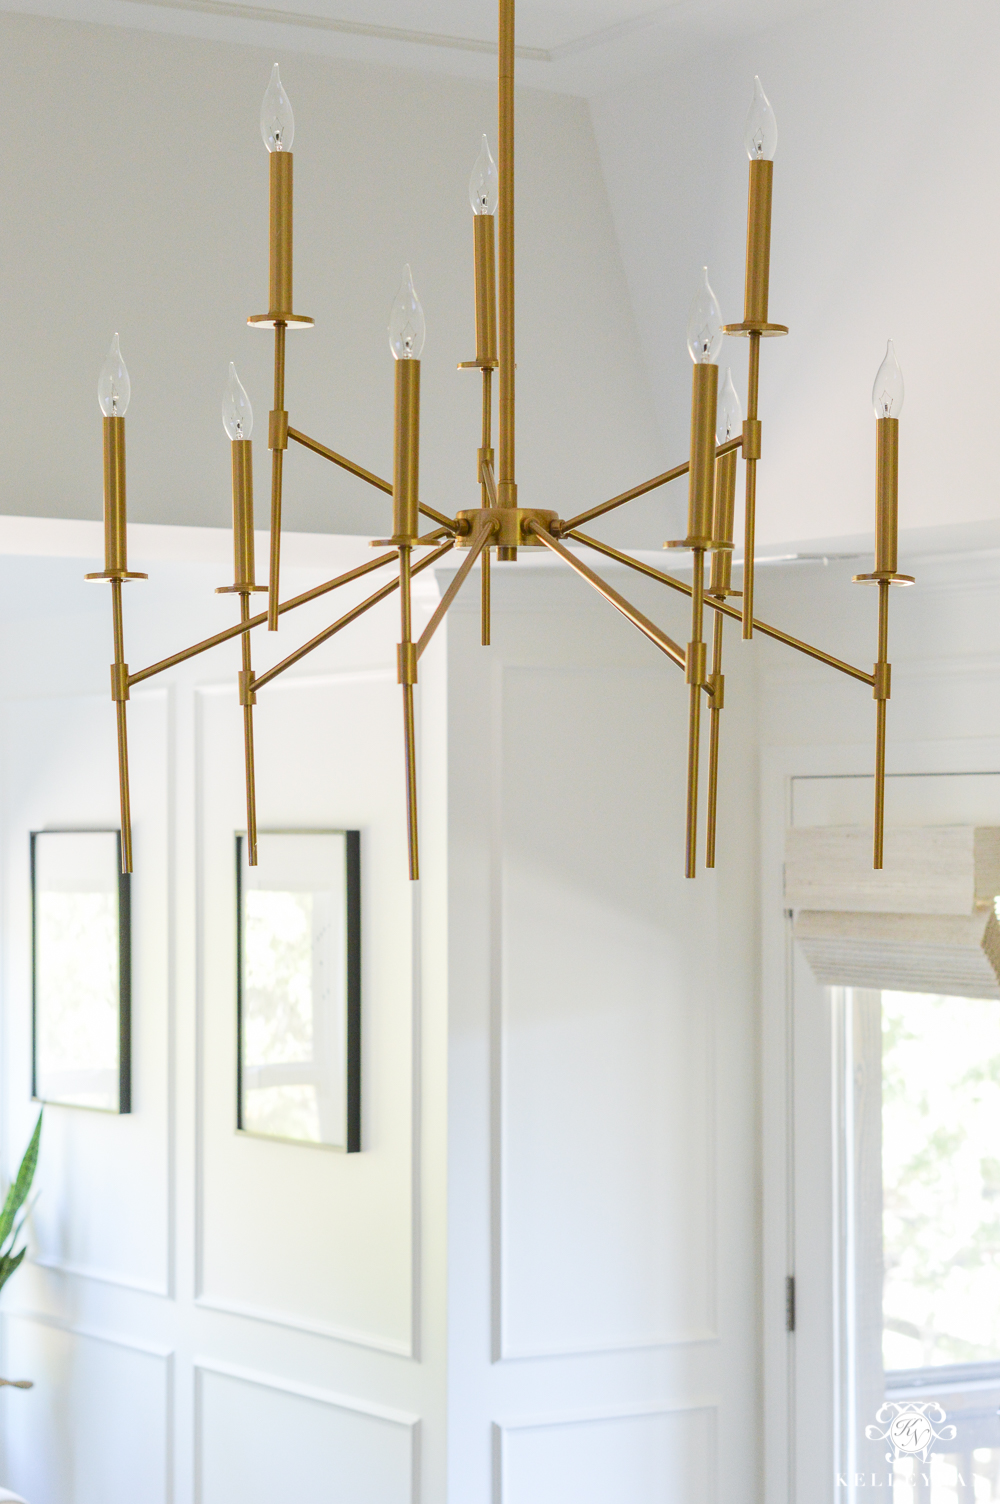 Gold modern chandelier for the bedroom- bedroom lighting ideas